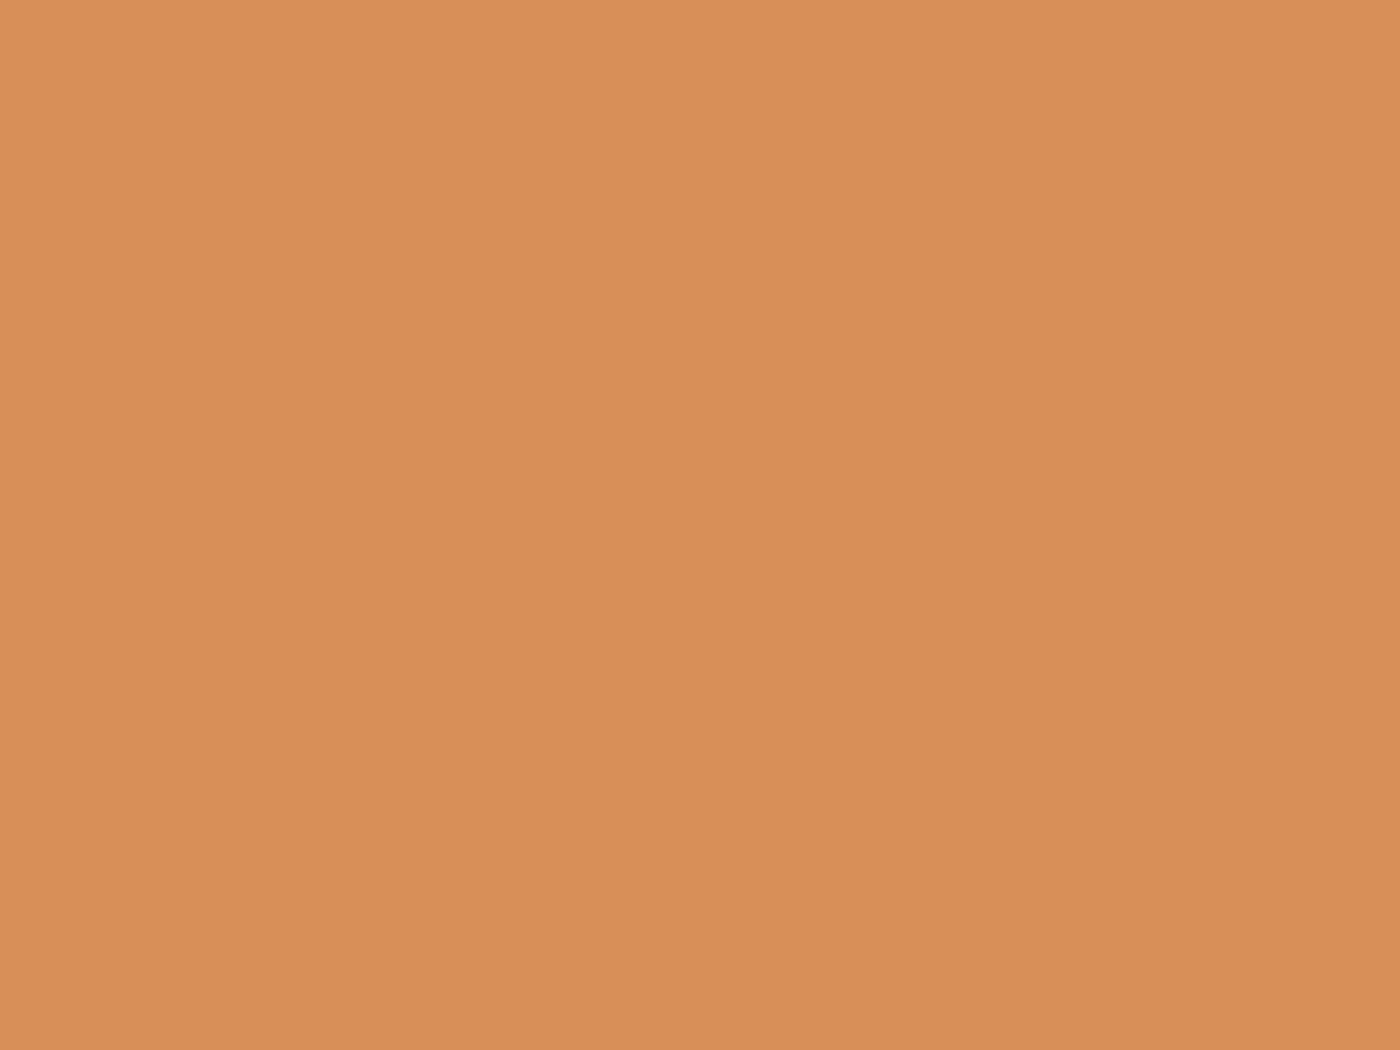 1400x1050 Persian Orange Solid Color Background